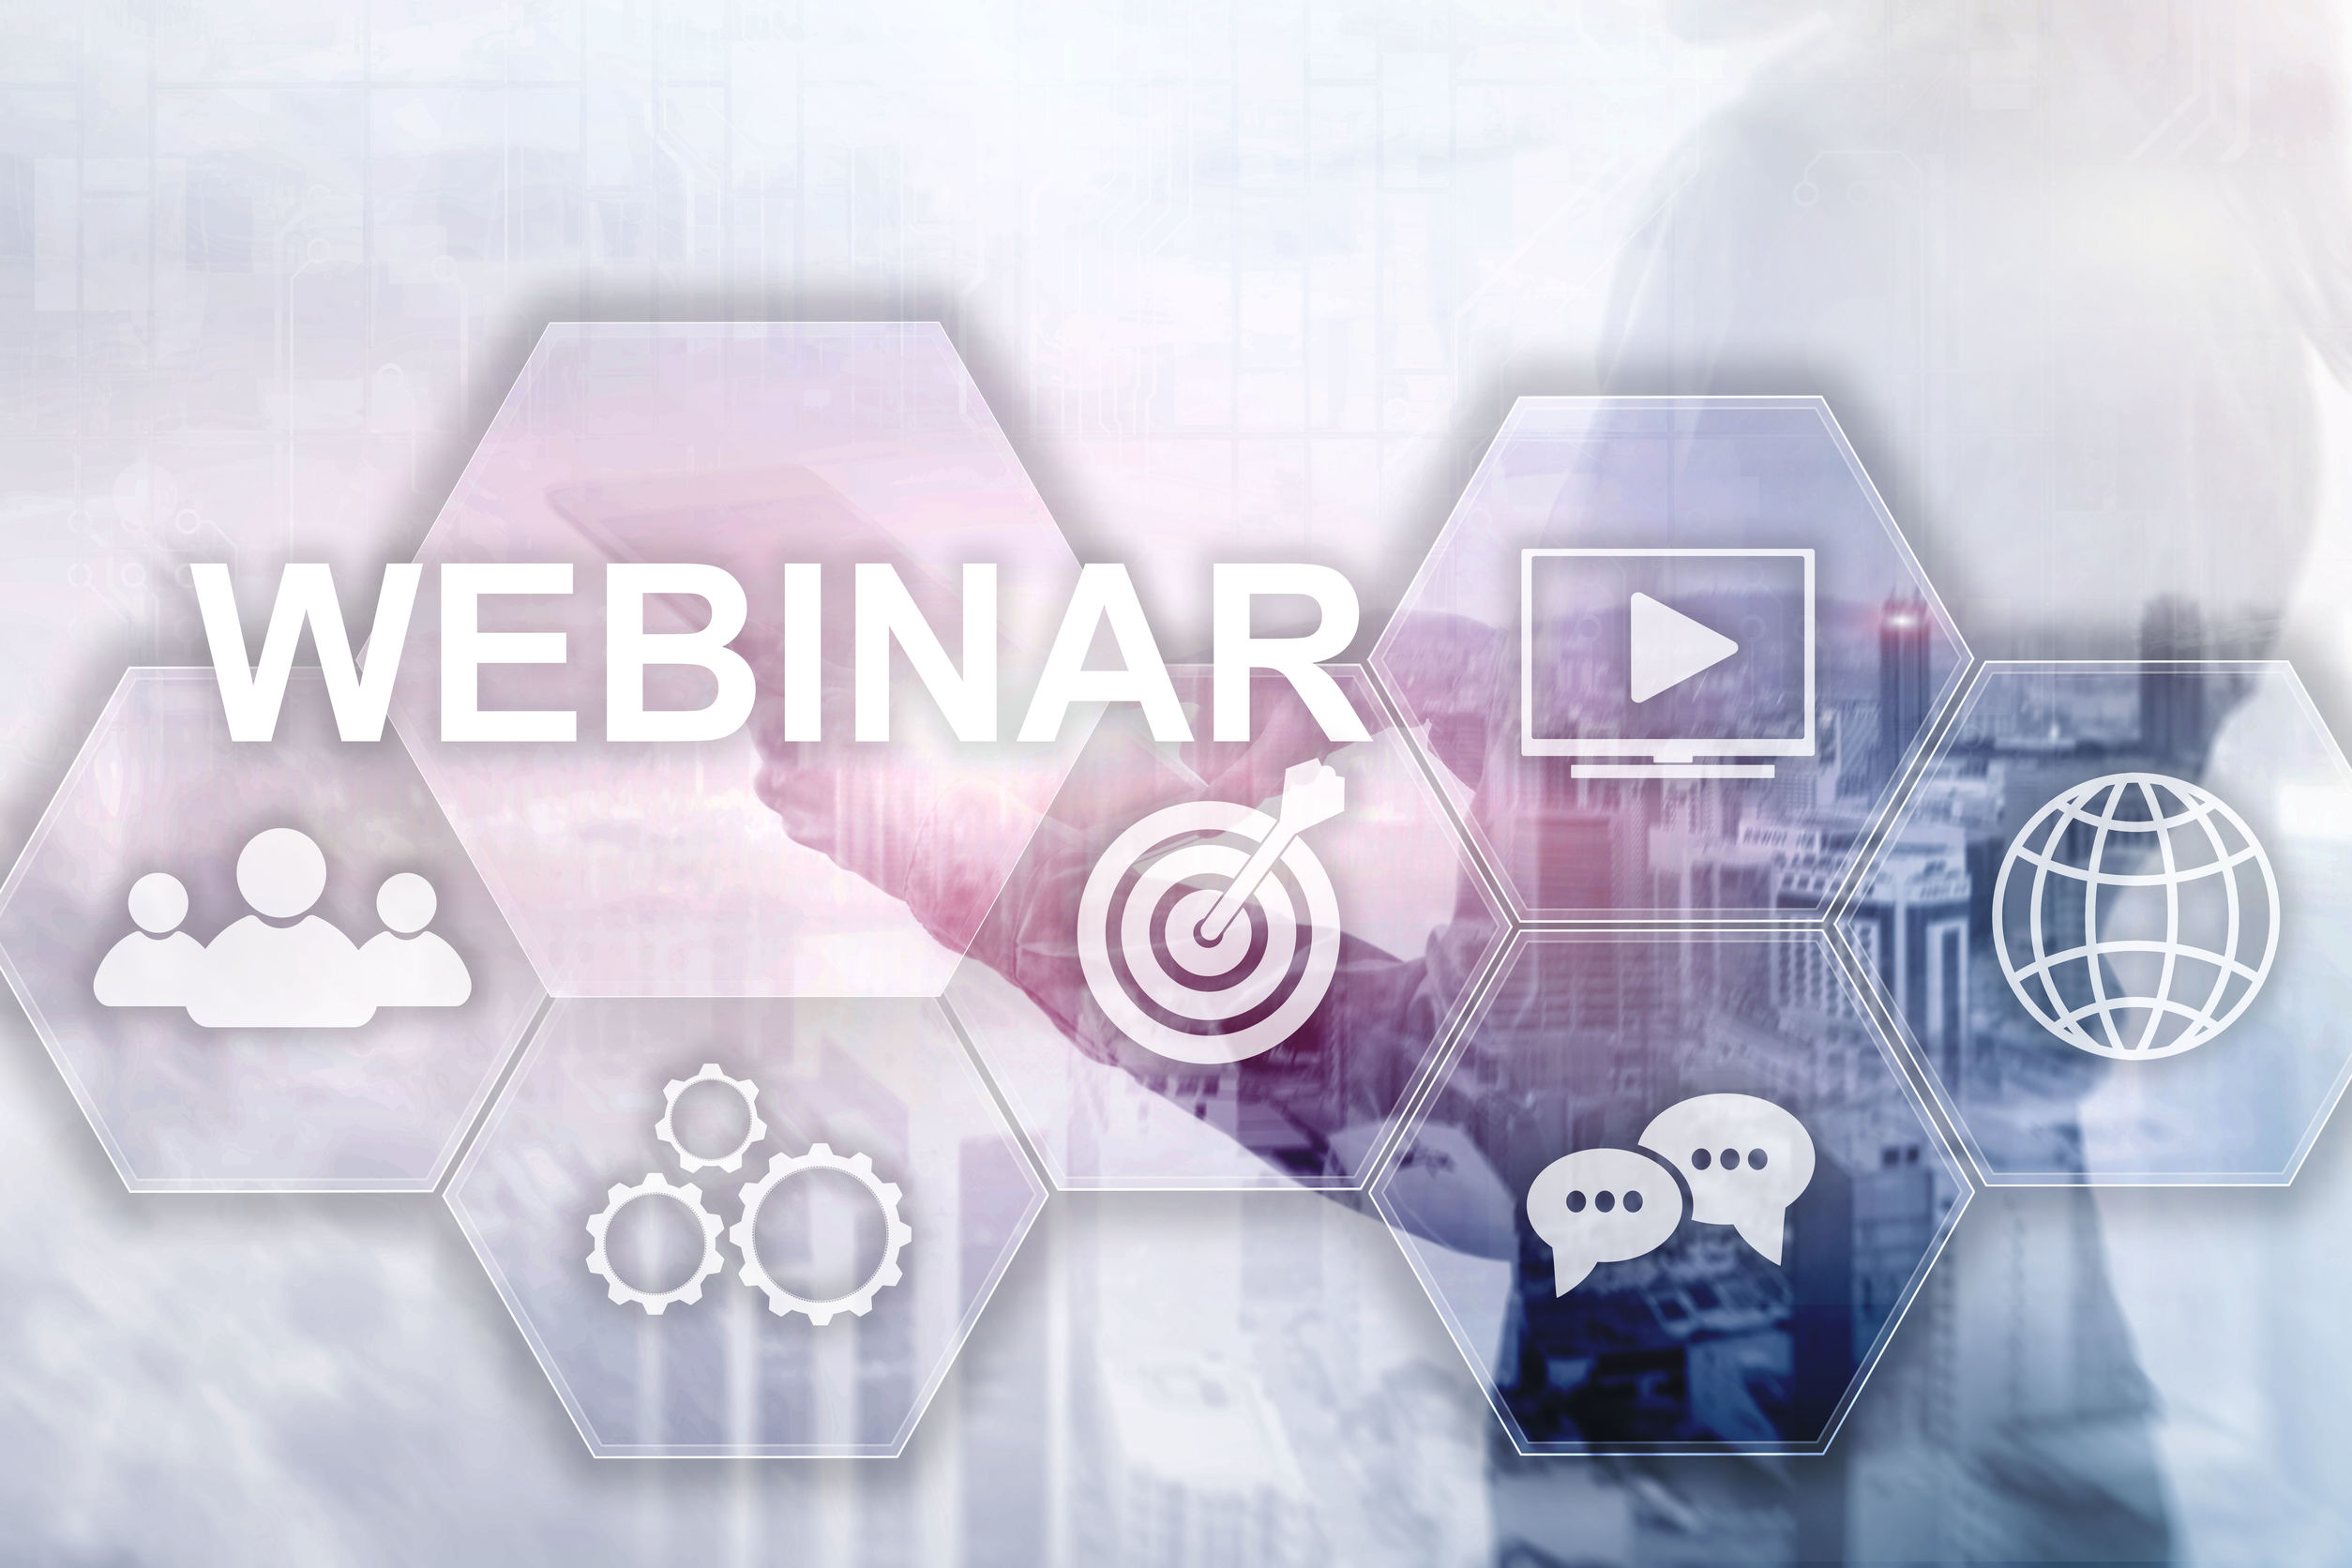 We're Shaking Things Up with Our February Webinars!